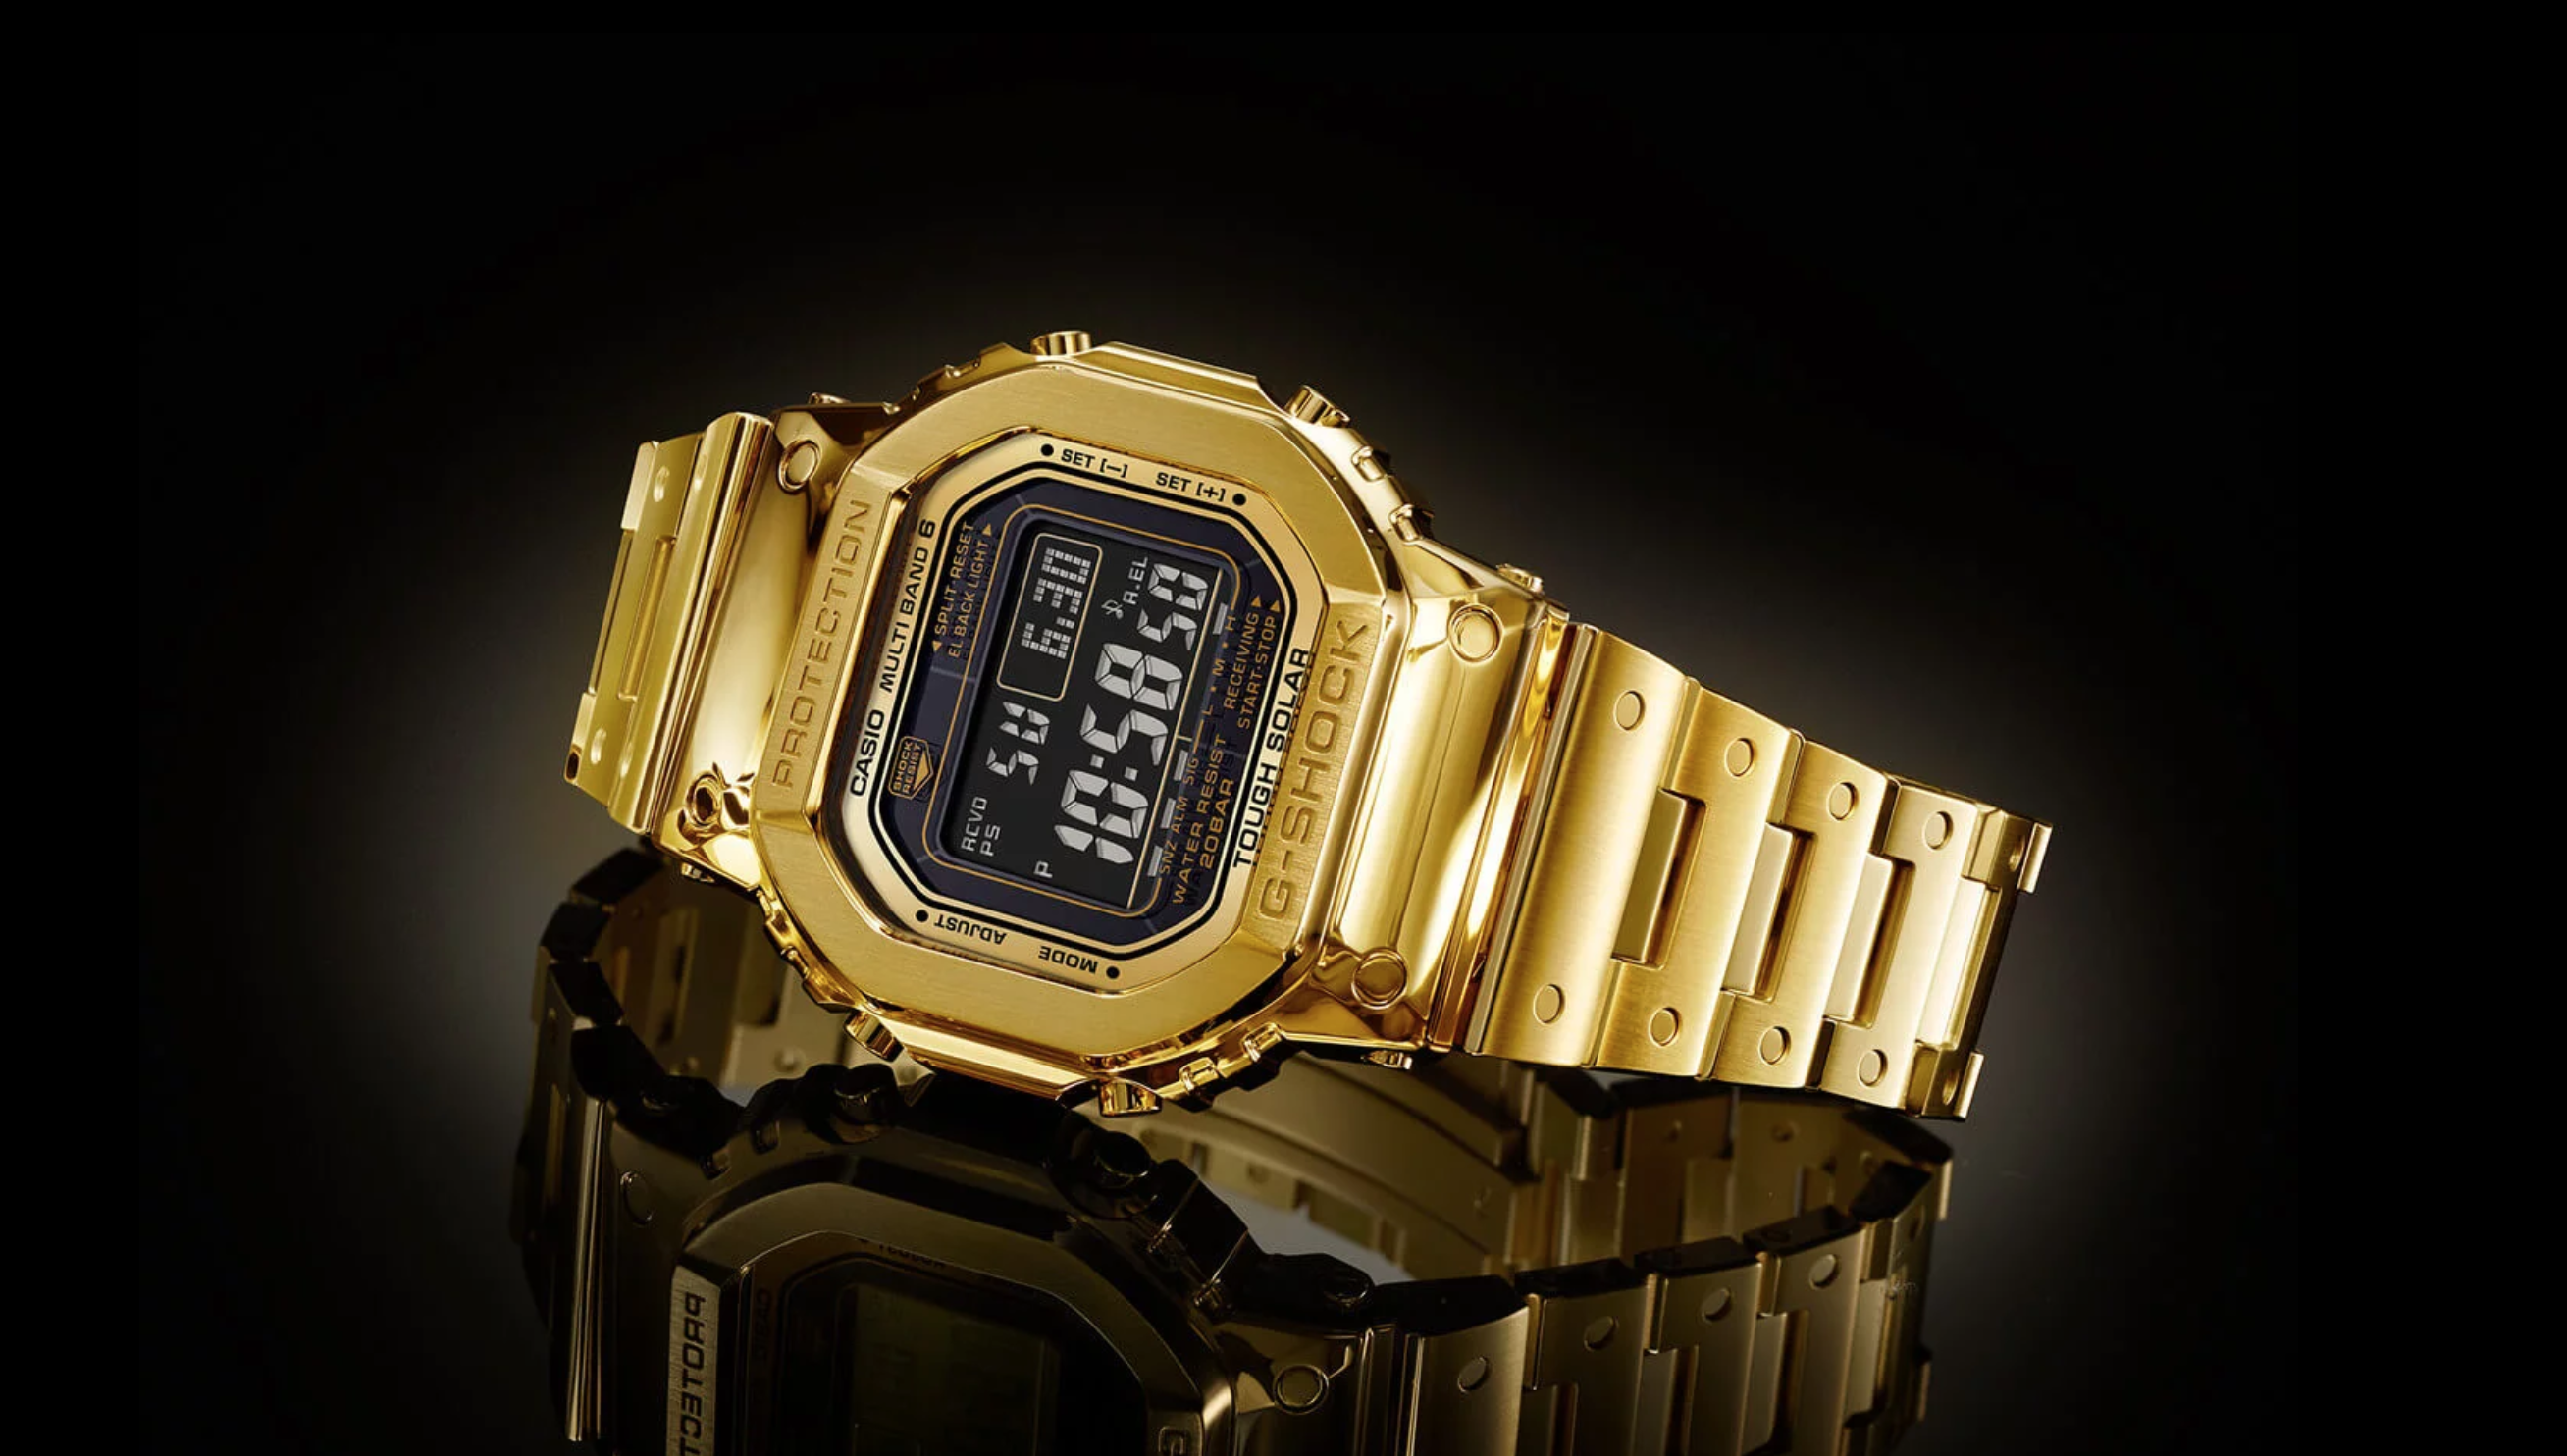 The watches James Bond should have worn